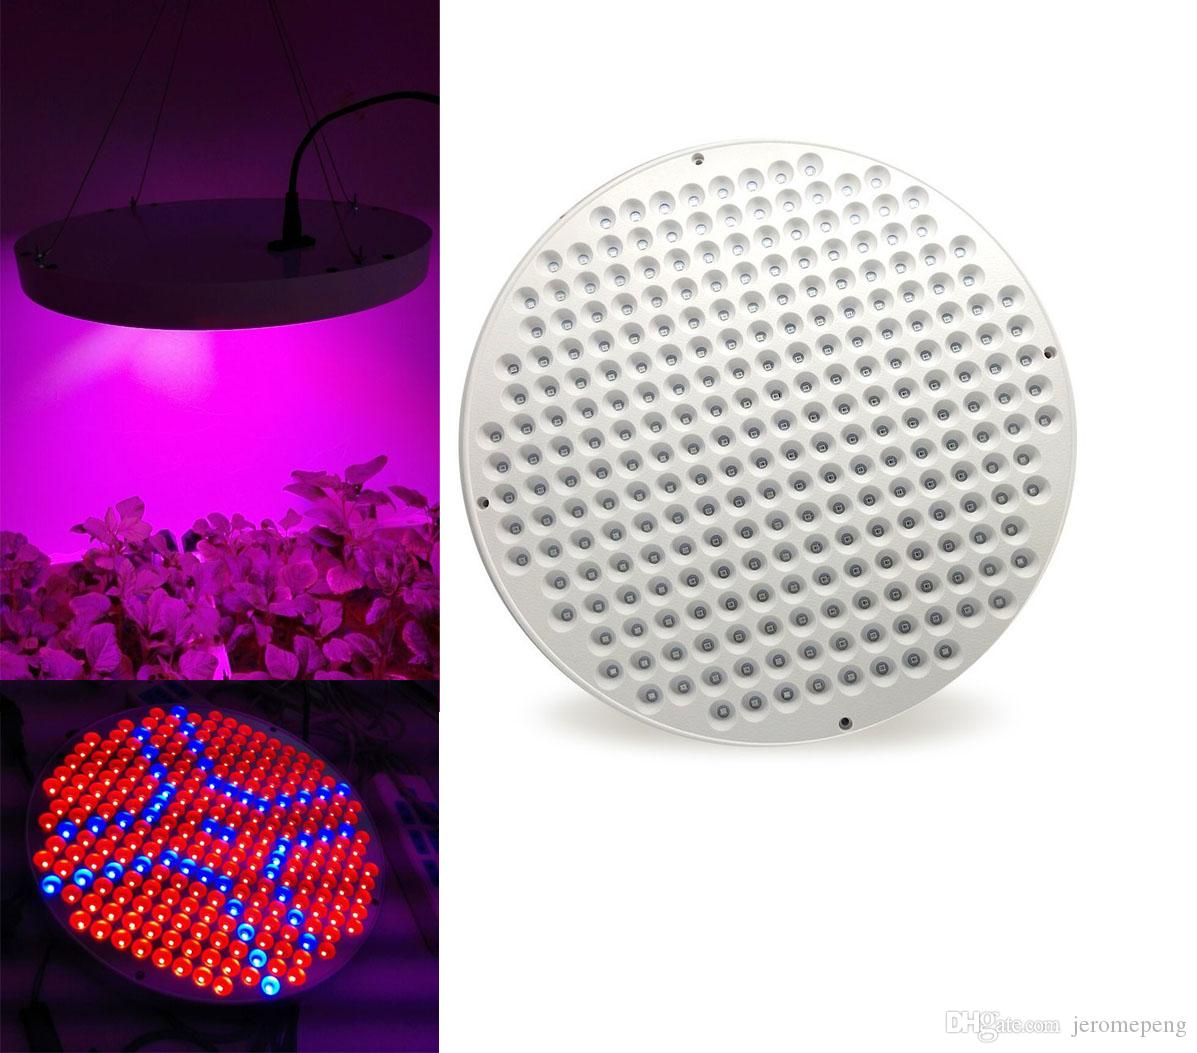 50W UFO LED Grow Light Lamp 250LEDs Red&Blue Unique Round Shap for Hydroponics Indoor Plant Garden Greenhouse